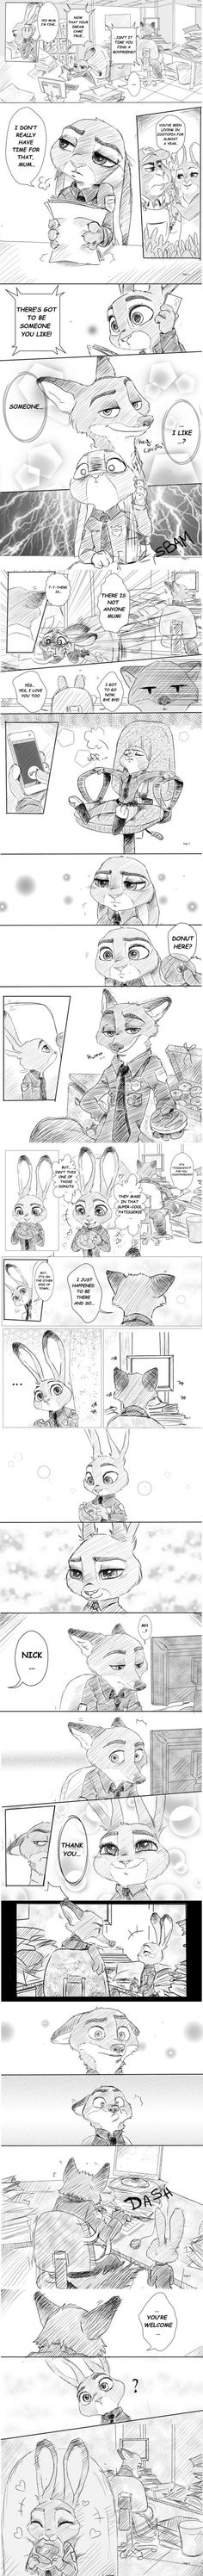 Boyfriend & Donut - Zootopia comic by Rem289 << AHHHHHHH OMG I LOVE THESE SO MUCH, I'm getting chills